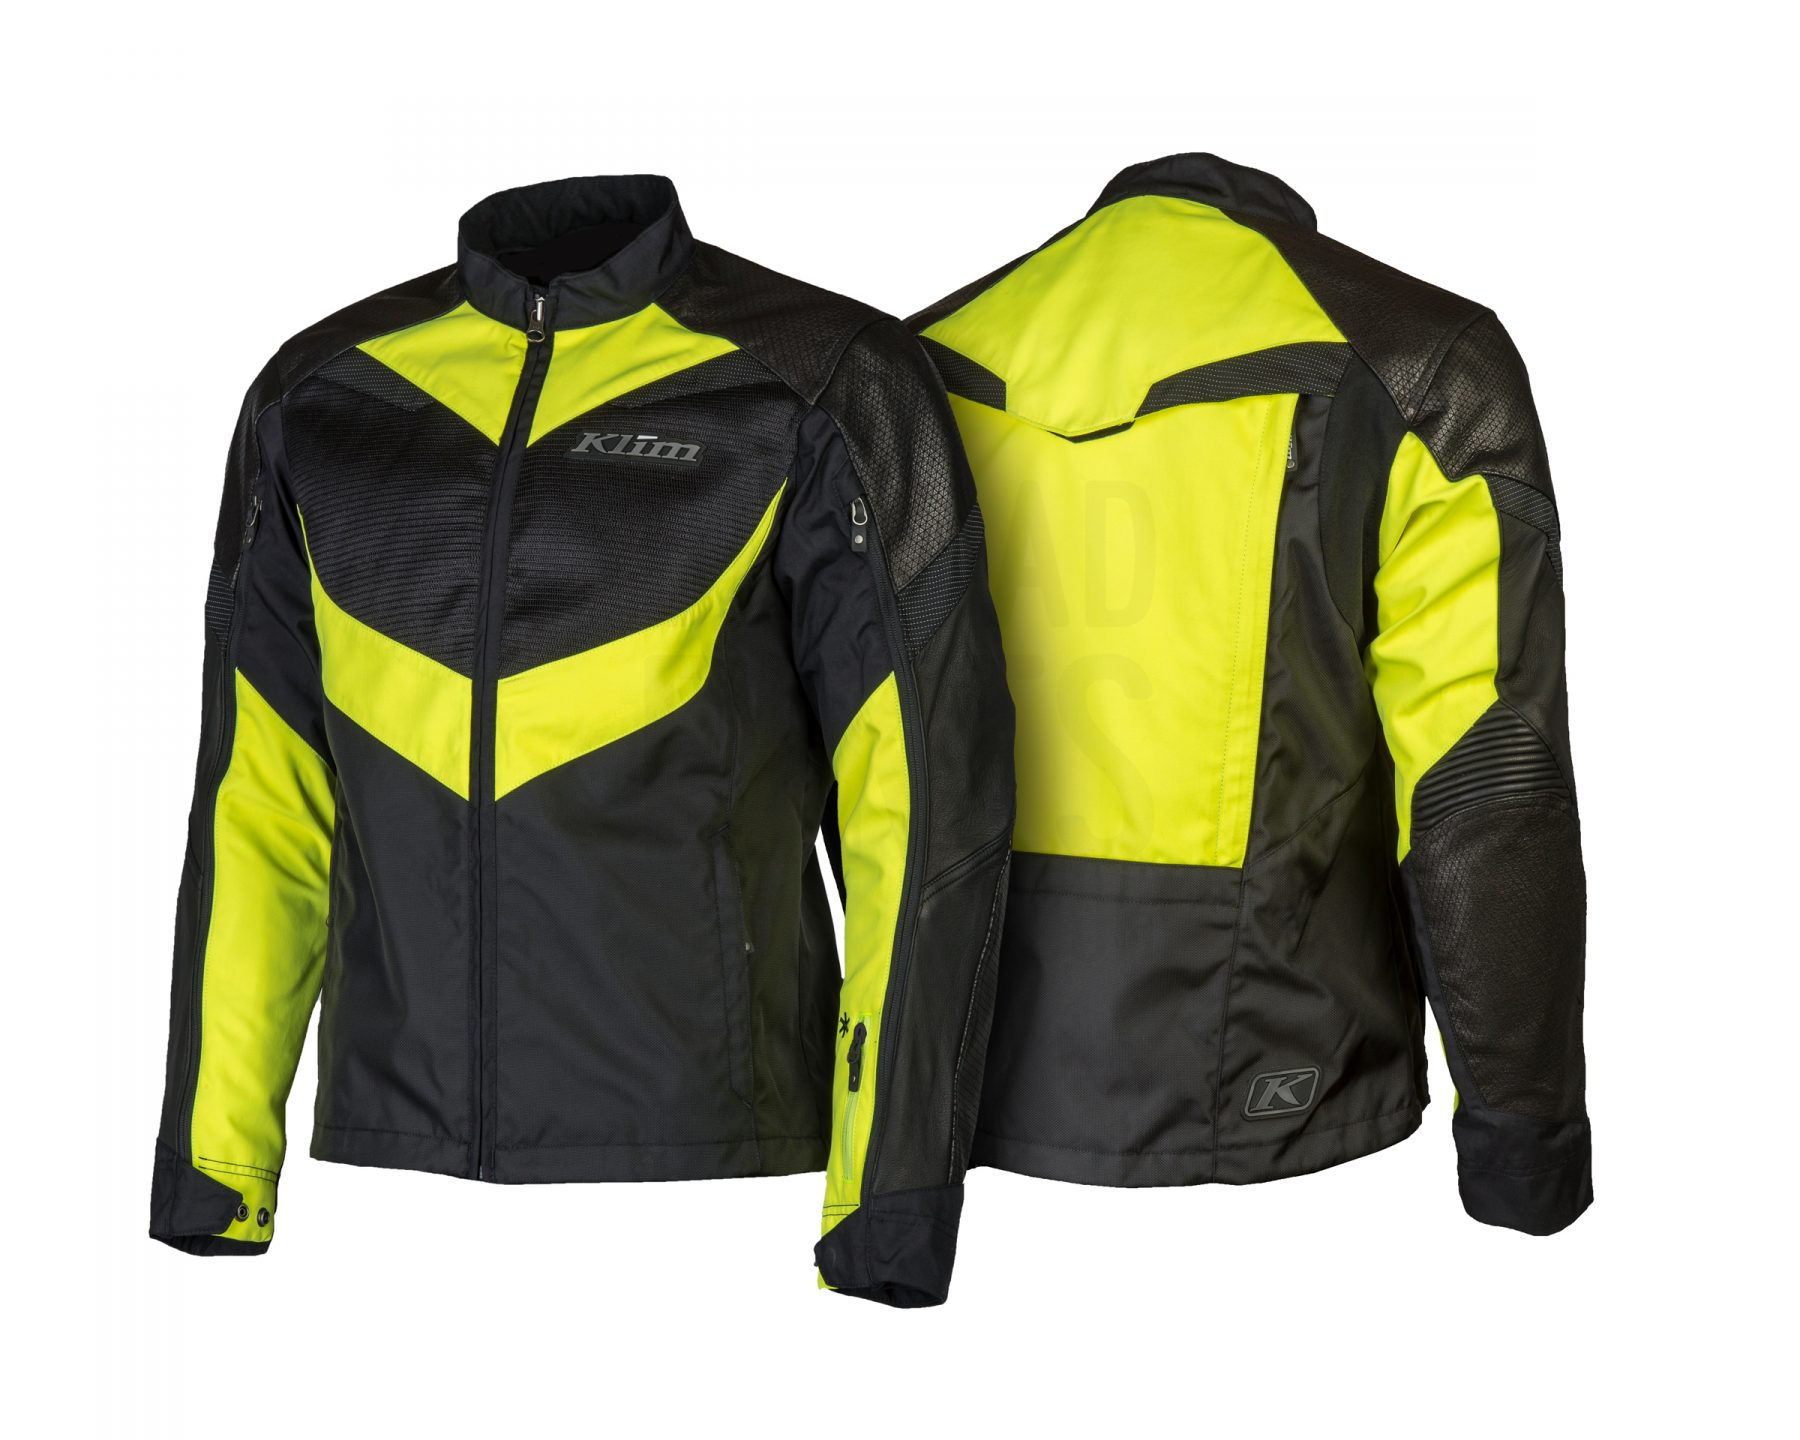 S Apex Air Jacket 5062-000-500_02